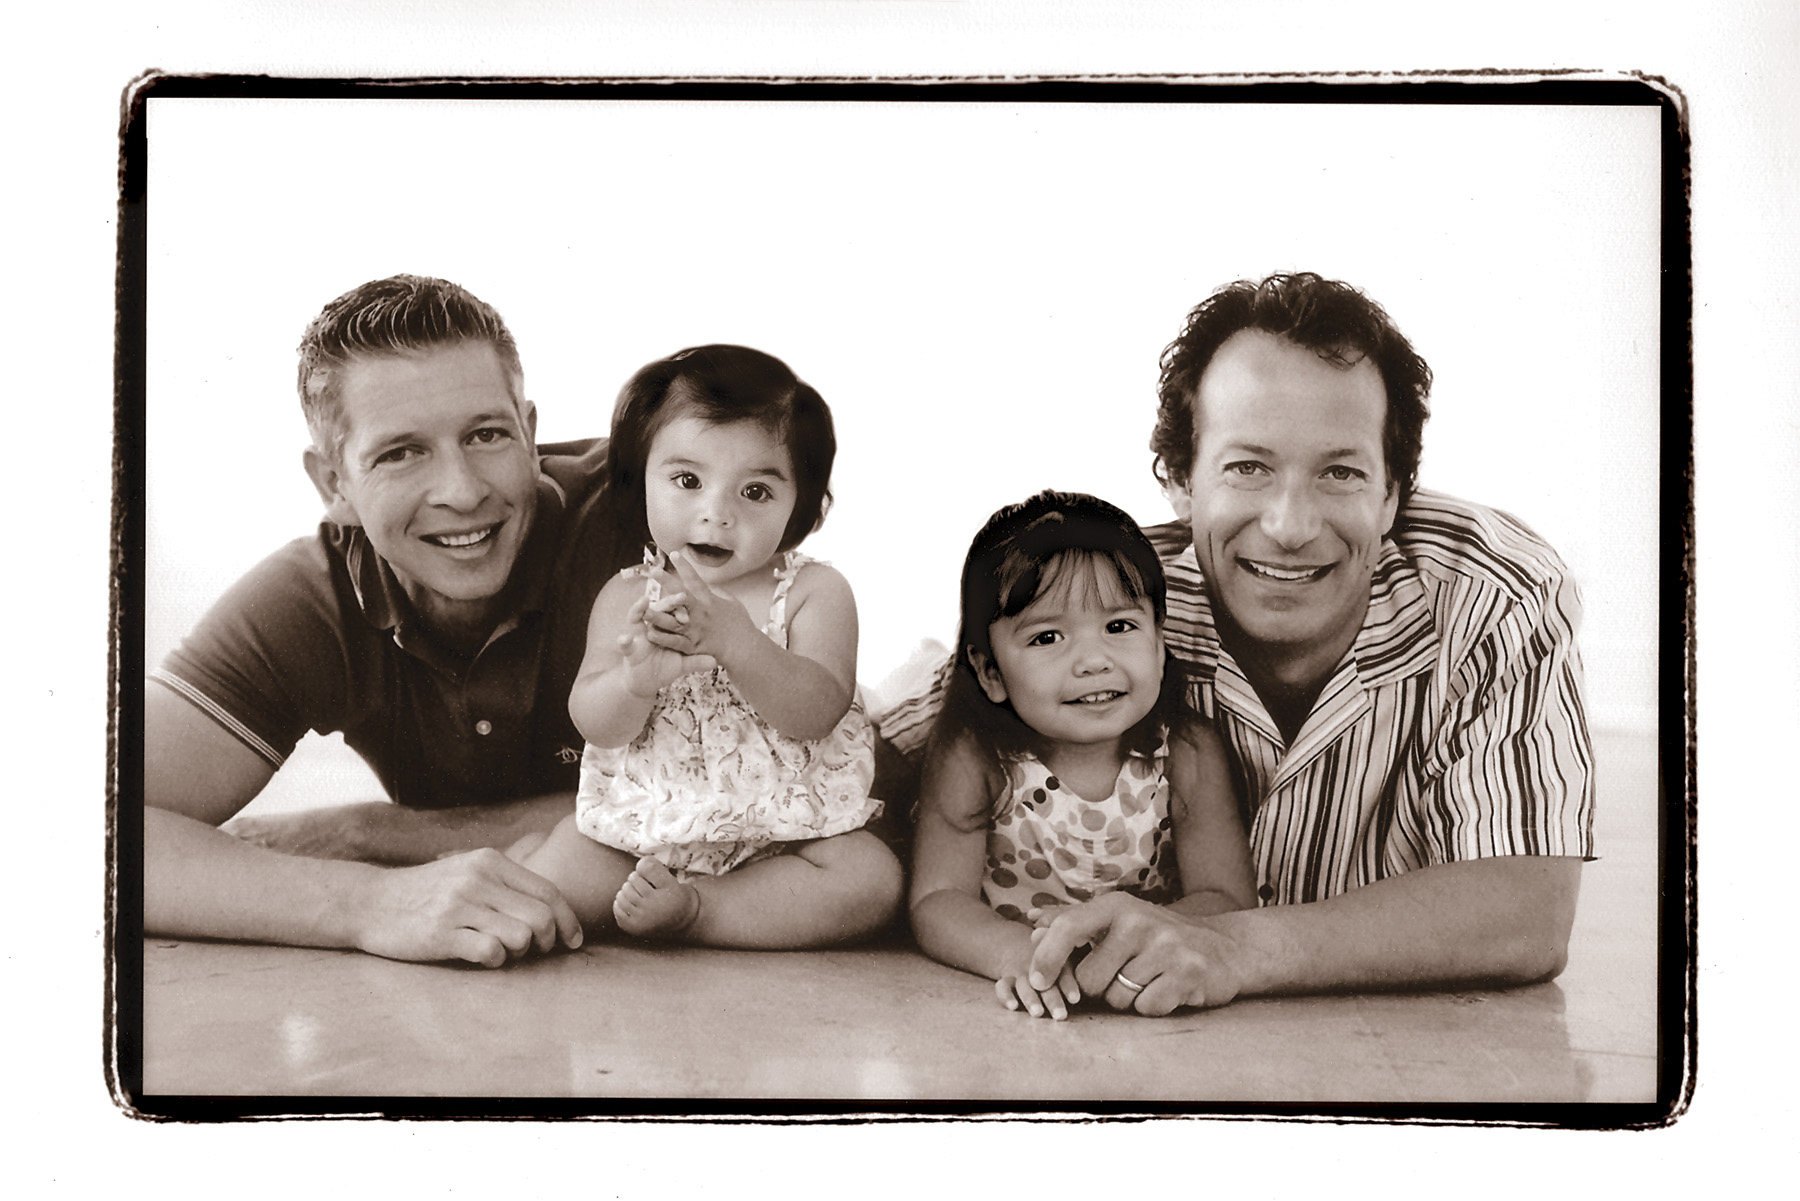 2 dads and their 2 young daughters in black and white studio shot, San Diego, CA